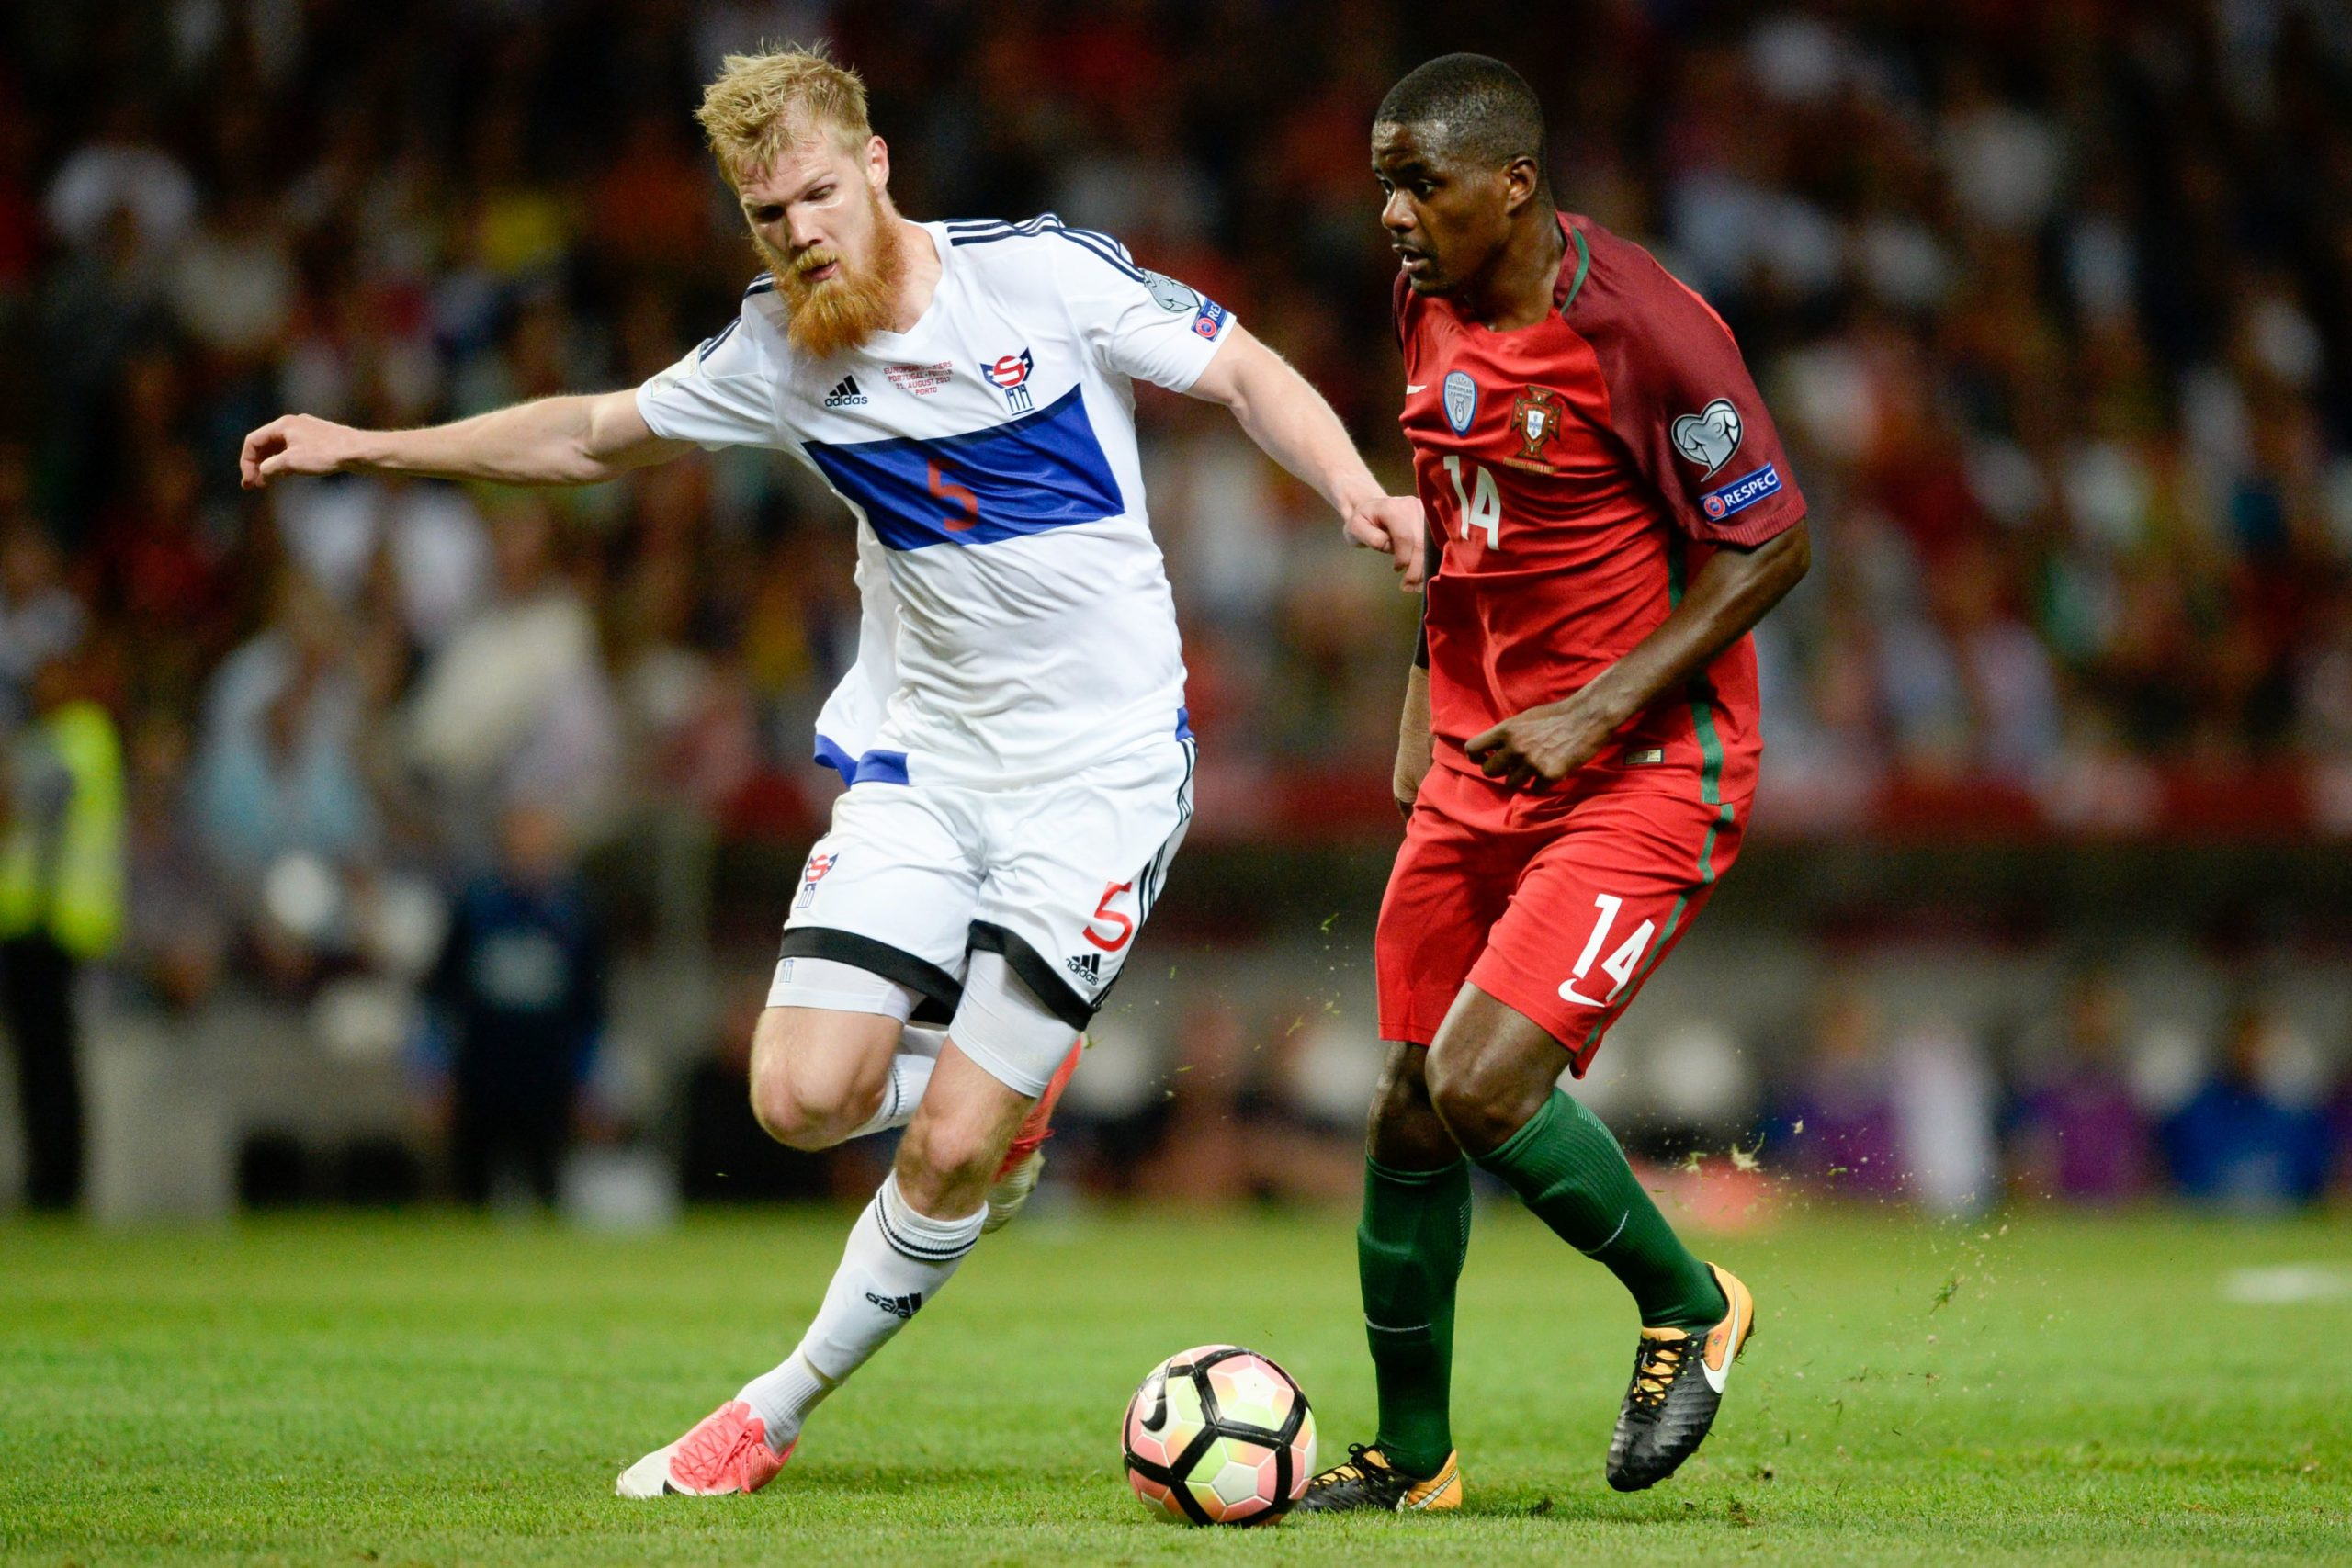 Portugal's William Carvalho fights for the ball with Odmar Faero of Faroe Islands during a World Cup qualifier in Porto.